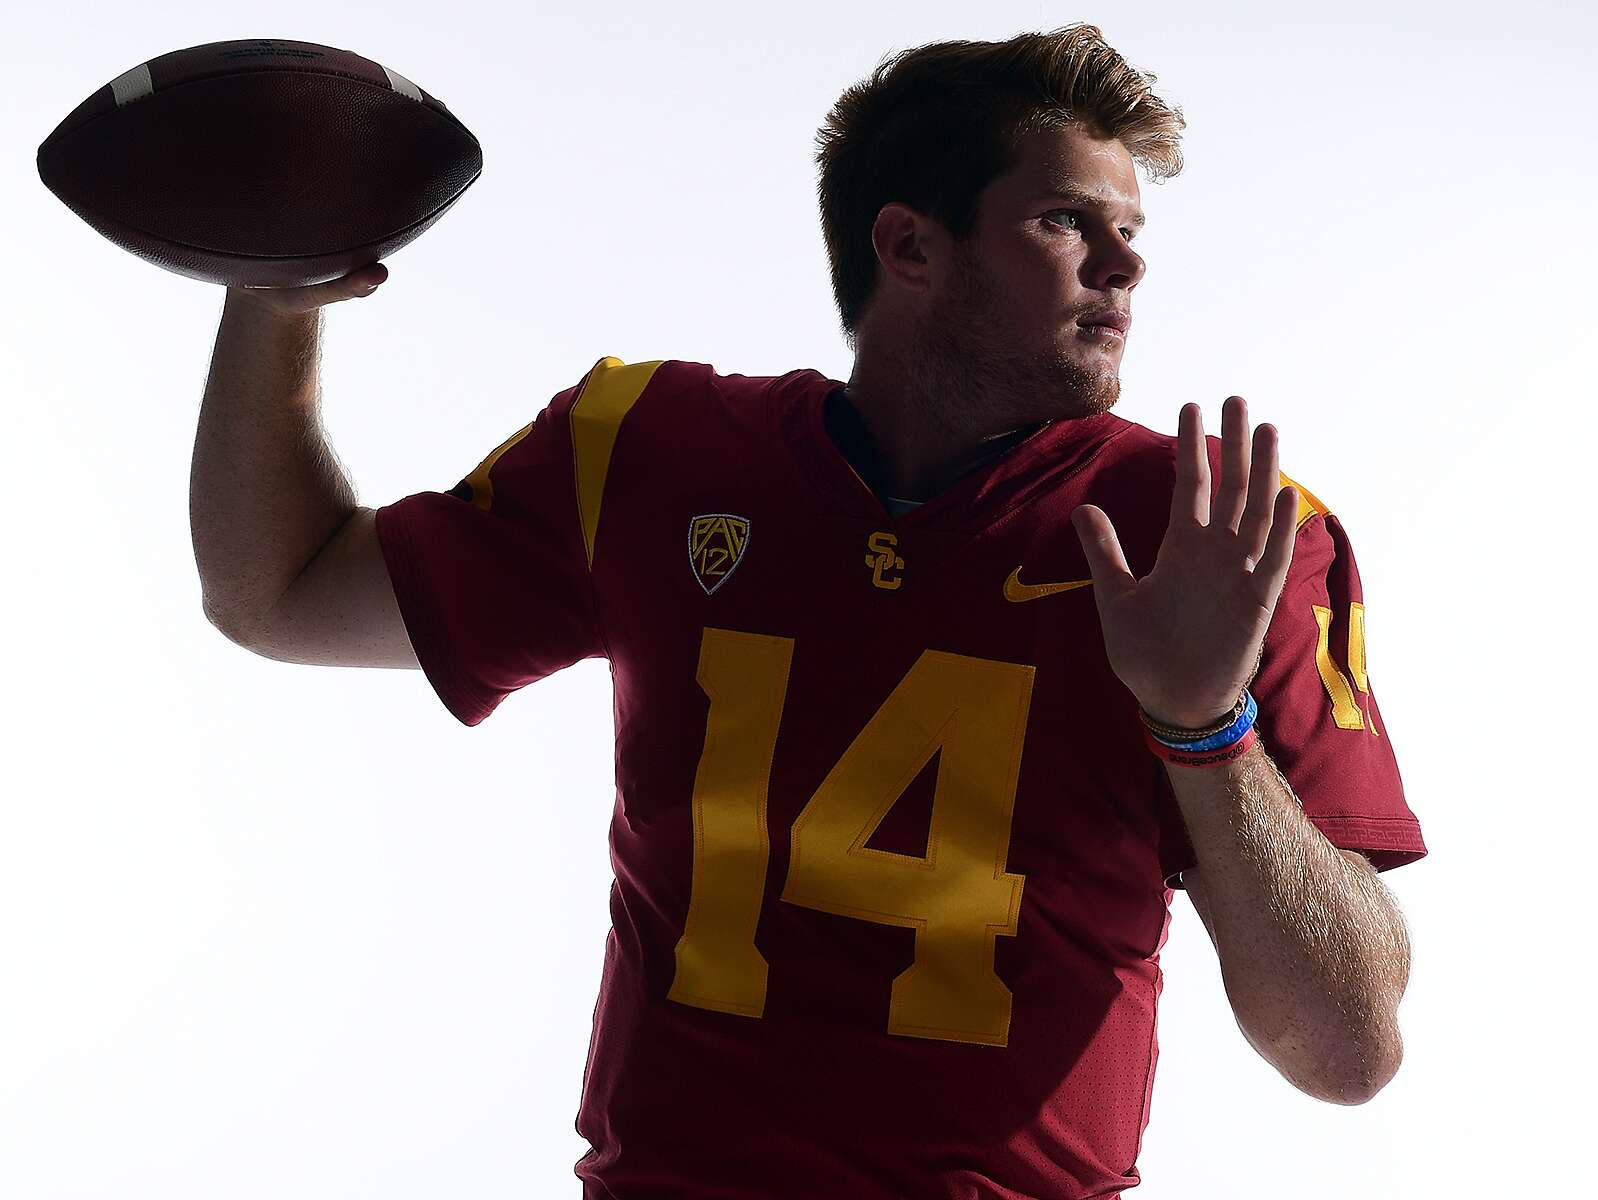 reputable site 2877d 11712 Sam Darnold: USC QB has Heisman, NFL draft in his sights ...